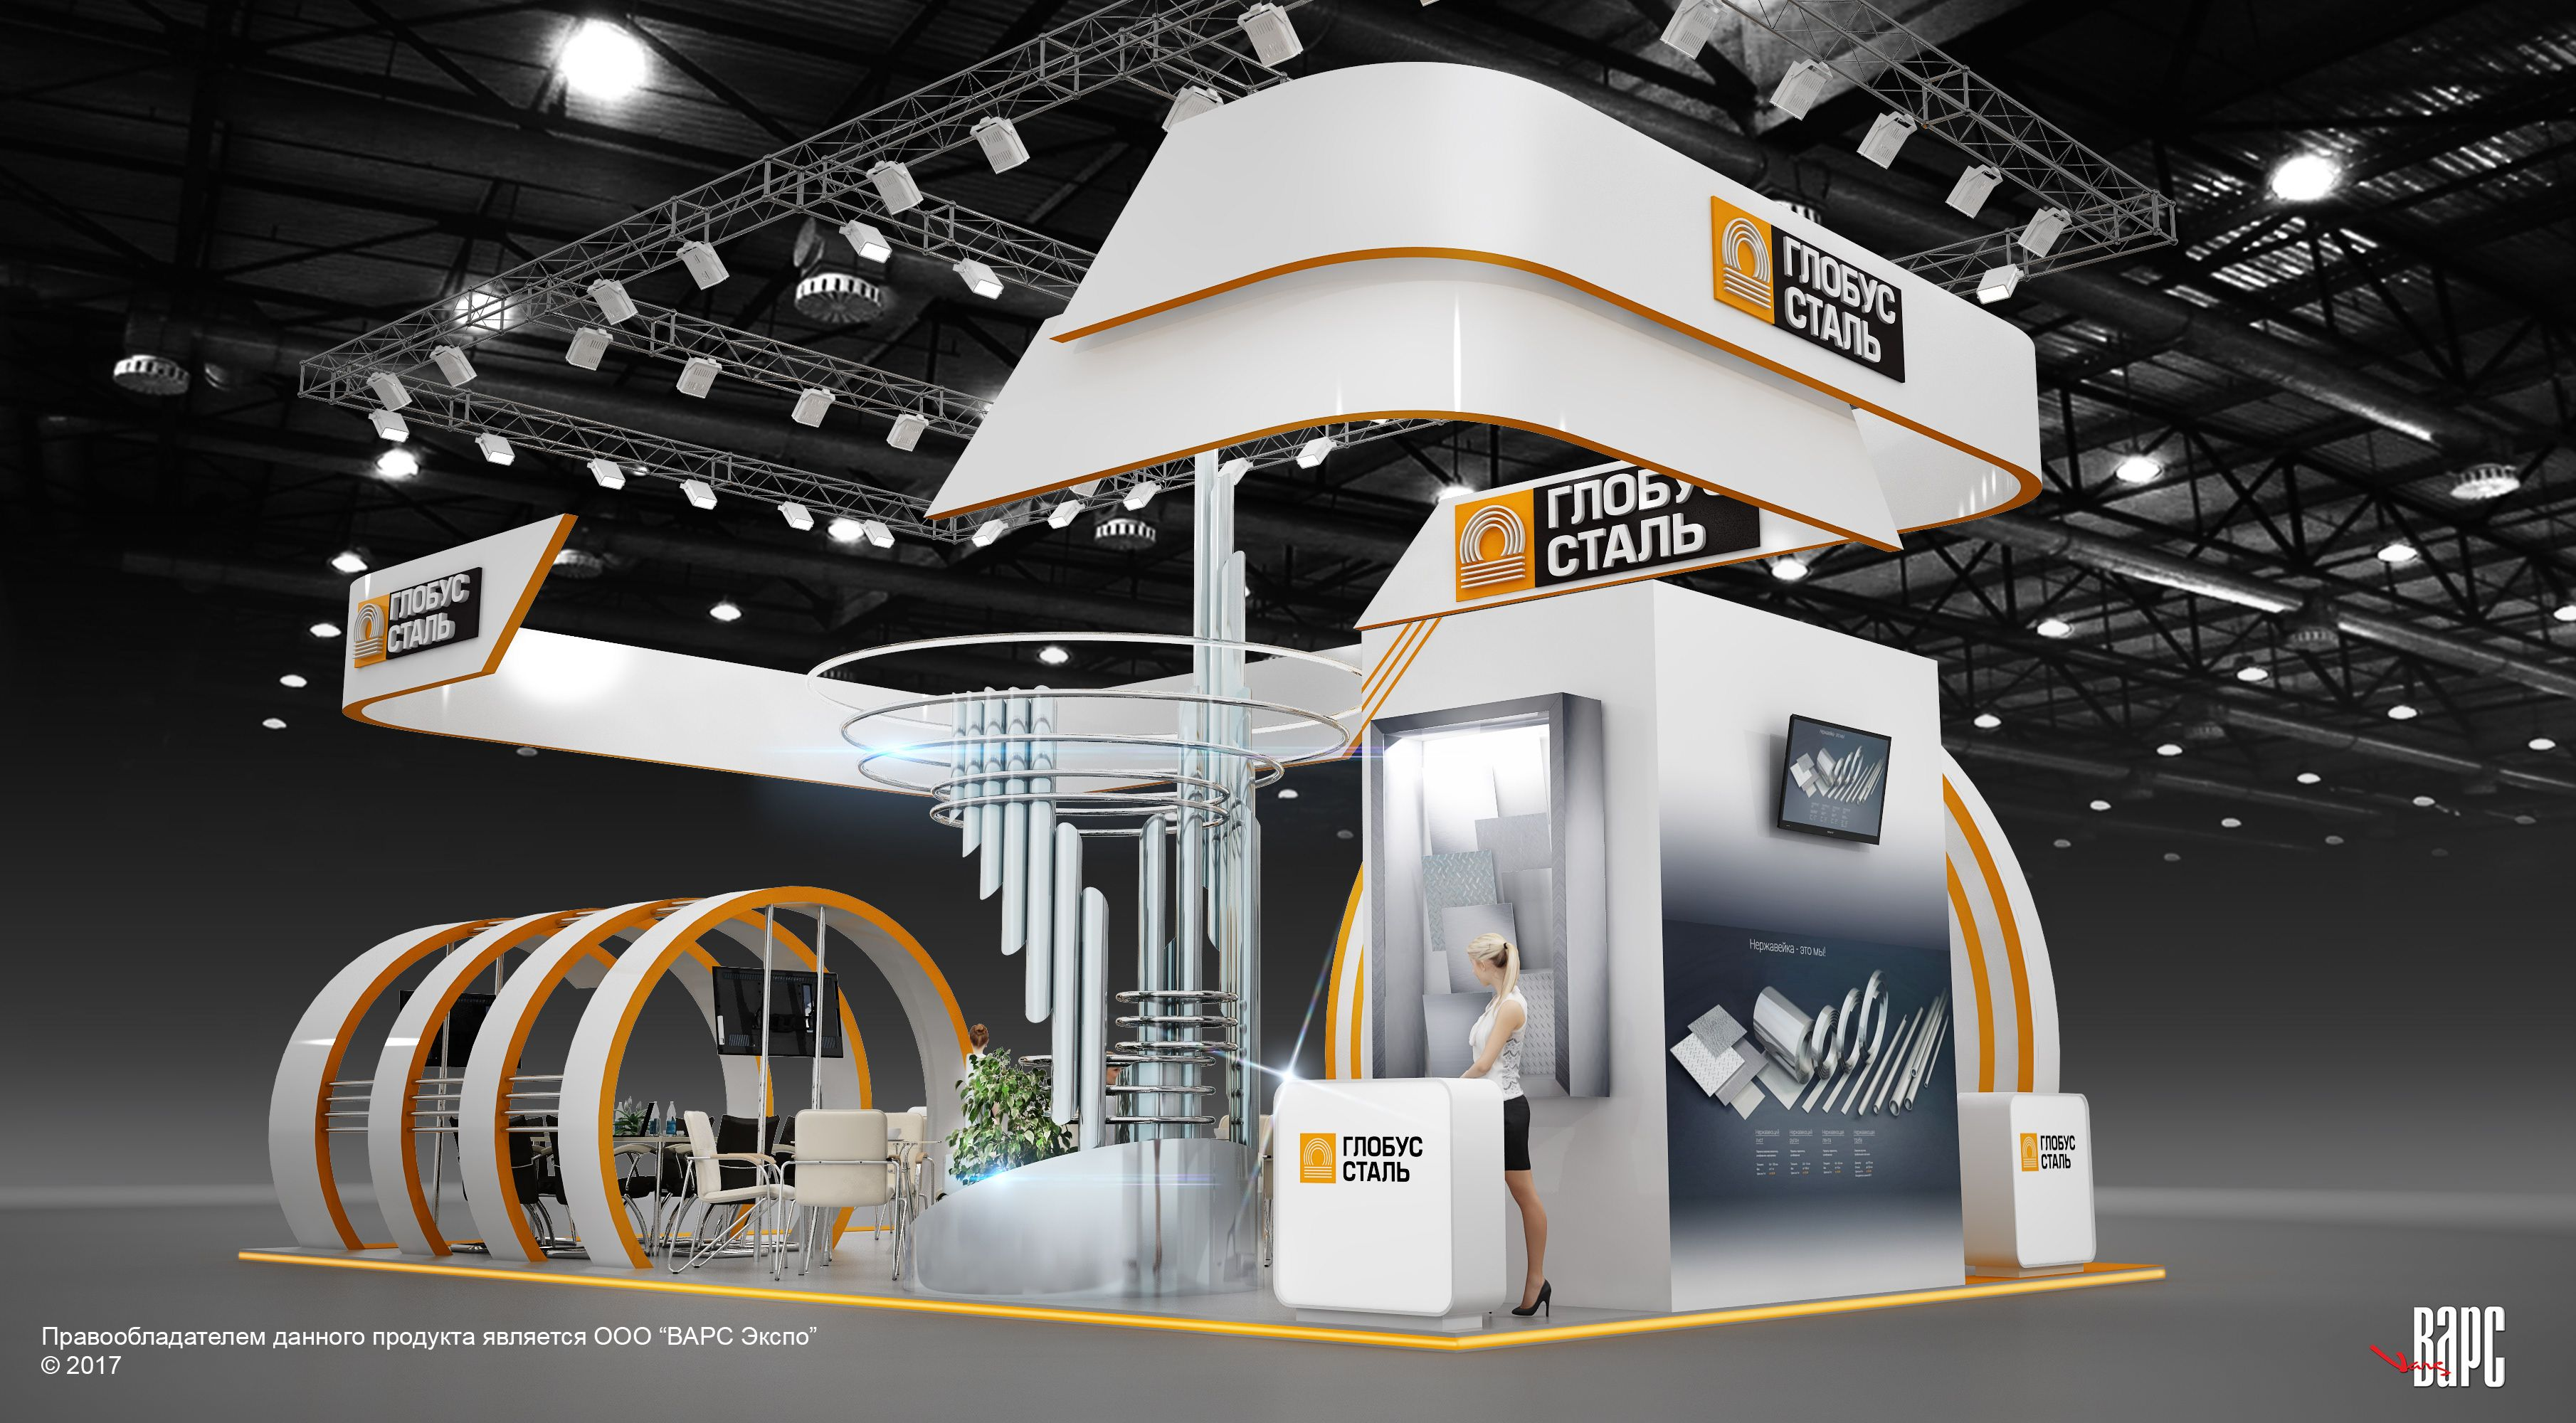 Exhibition Stand Builders Perth : Pin by daria yorke on Выставочные стенды exhibition stand design